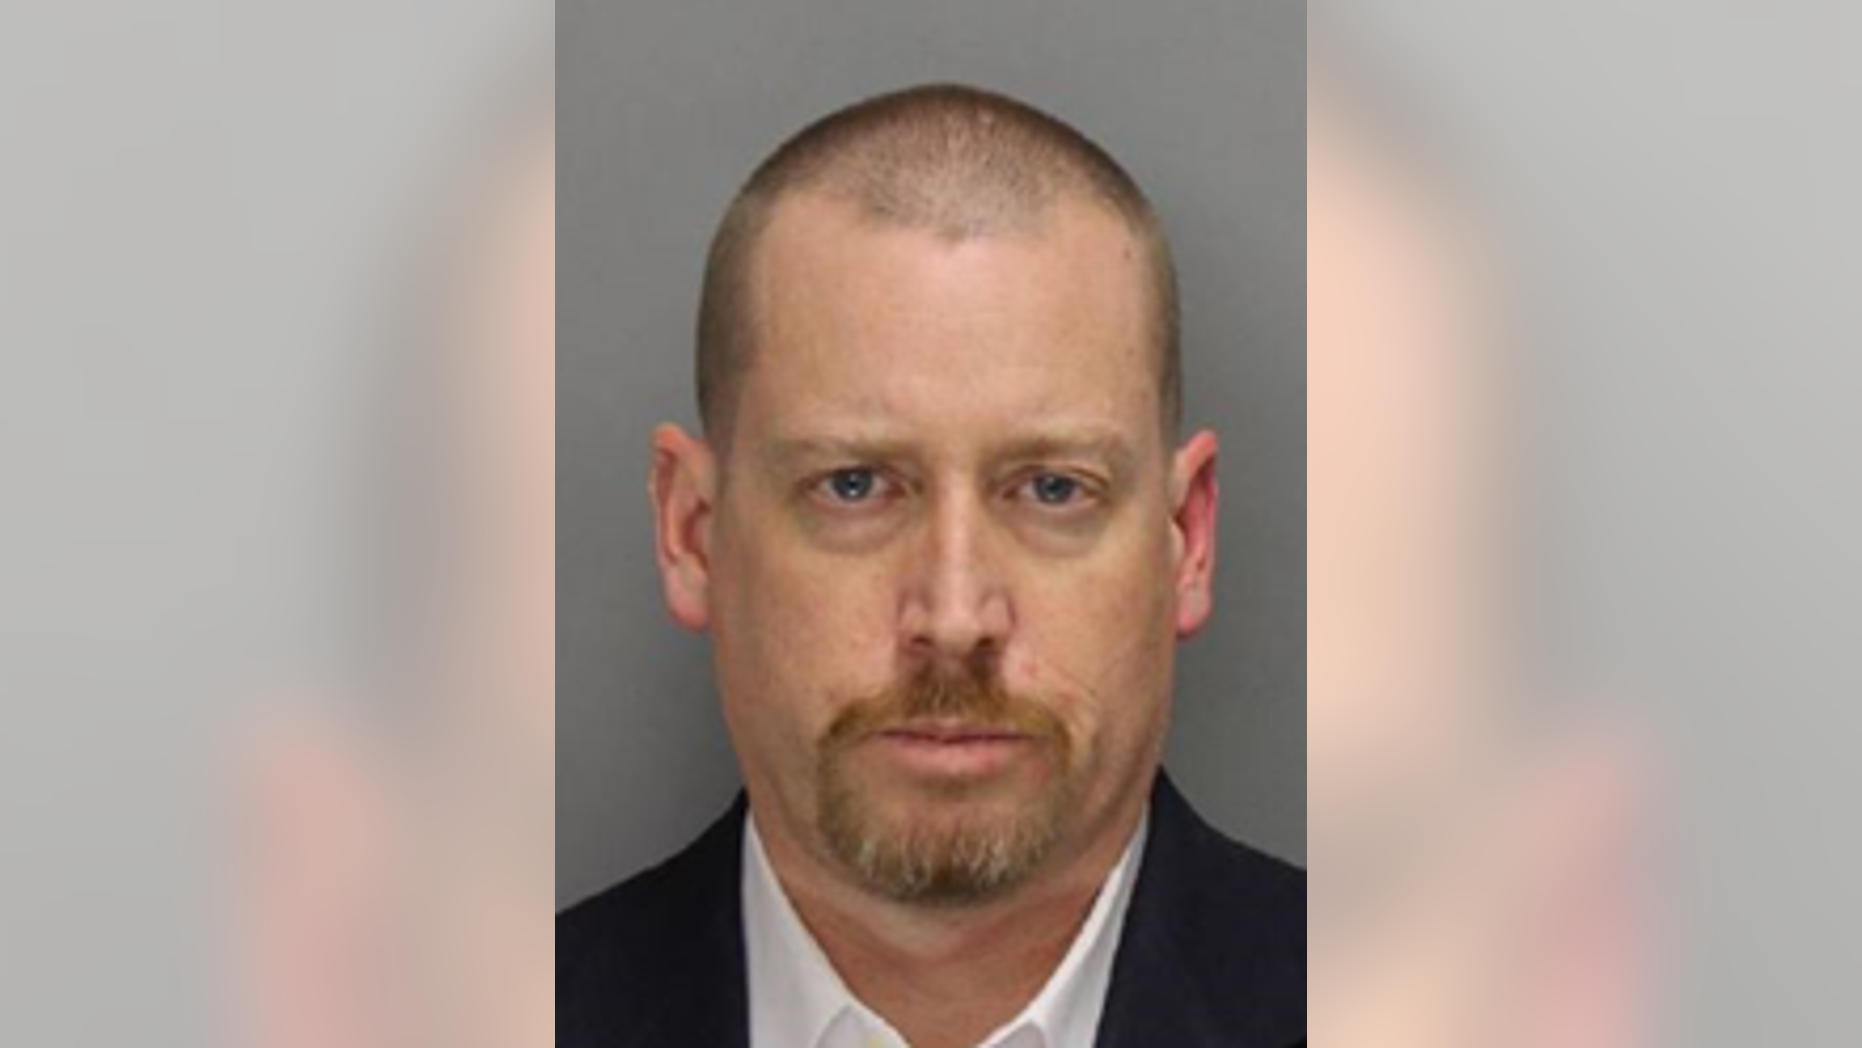 An all-out manhunt is underway after Richard Merritt, 44, allegedly violently murdered his mother, cut off his ankle monitoring bracelet and fled a day after he was supposed to turn himself in for a 30-year sentence.